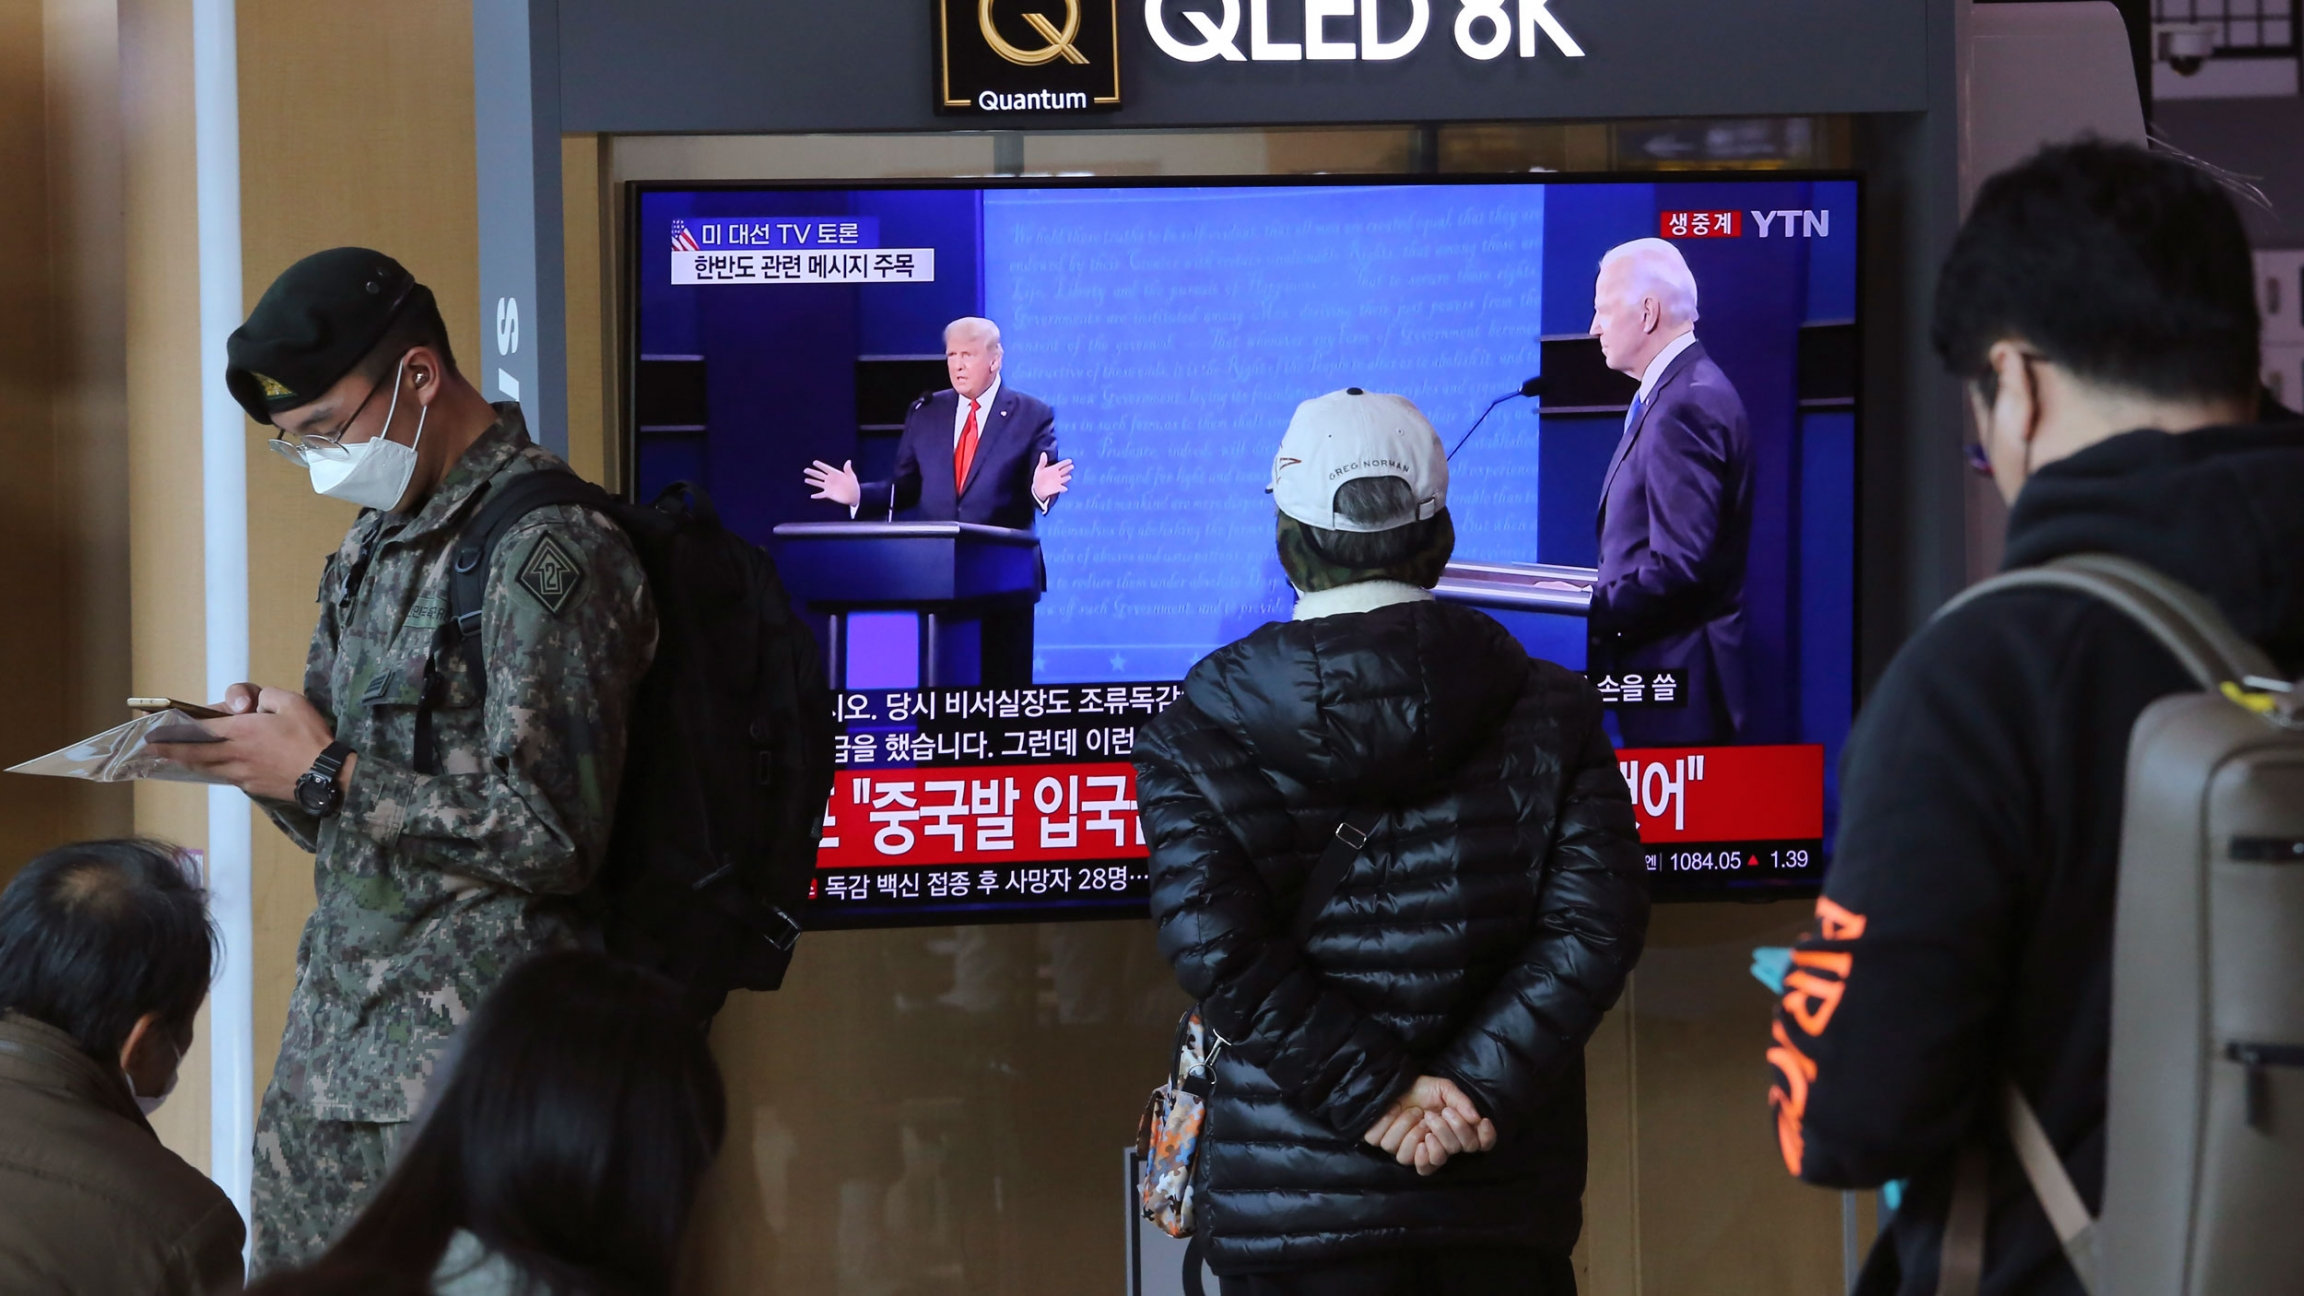 Several people are shown standing near and one person watching a TV screen showing the US presidential debate.